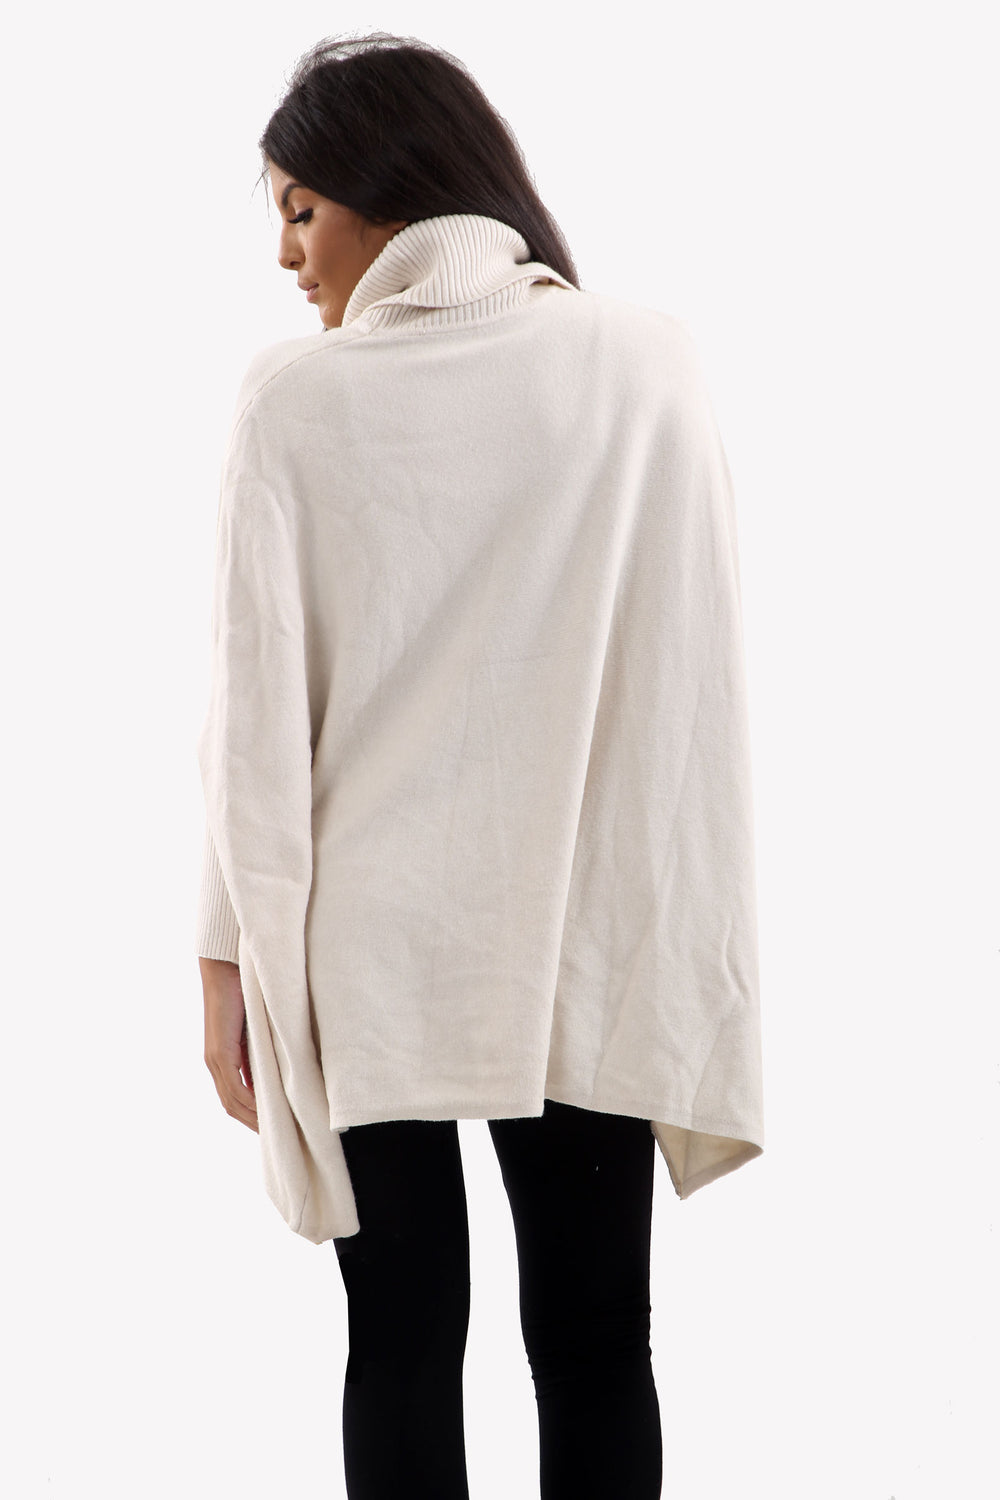 Cream Roll Neck Batwing Oversized Soft Jumper